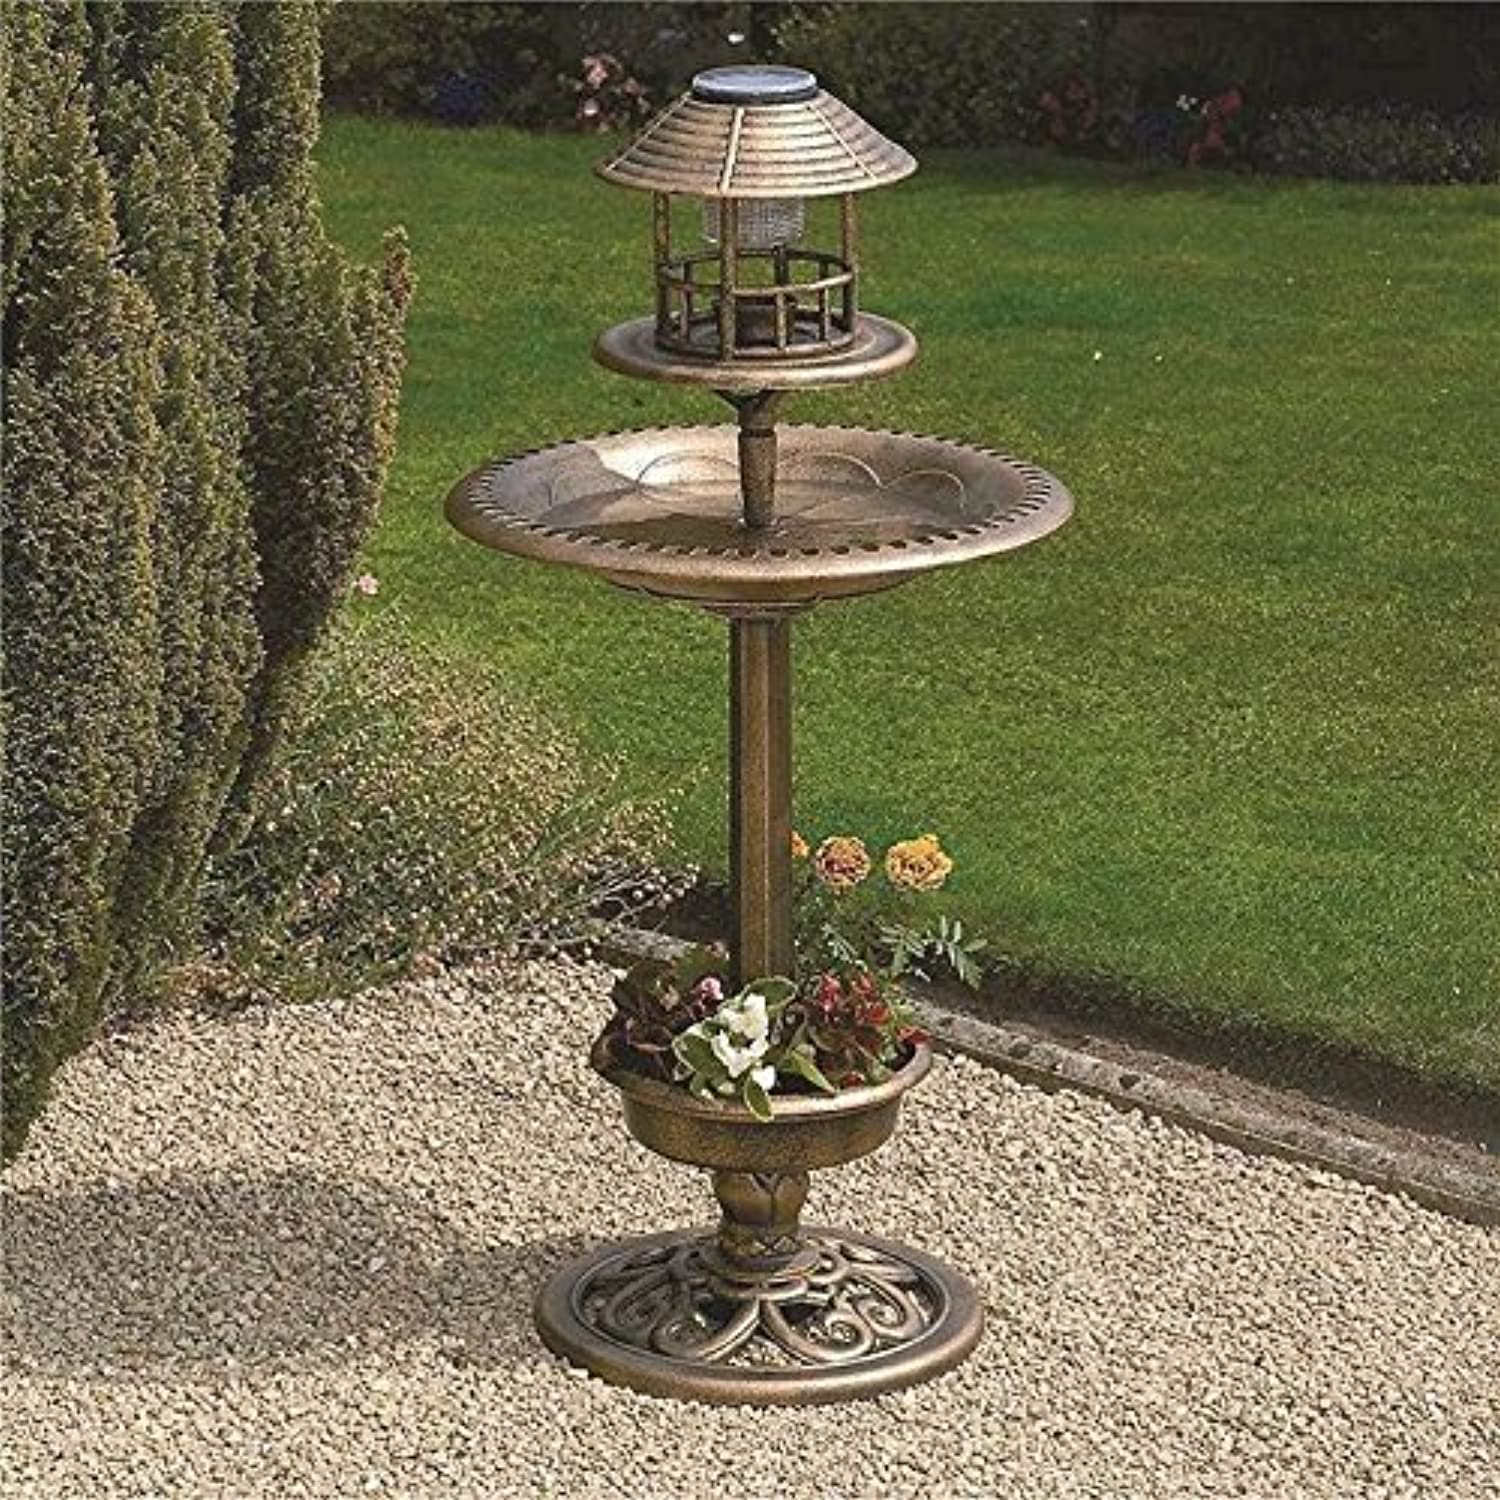 3 X New Bronze Outdoor Bird Feeder Bath Solar Light Weather Resistant Garden Hotel